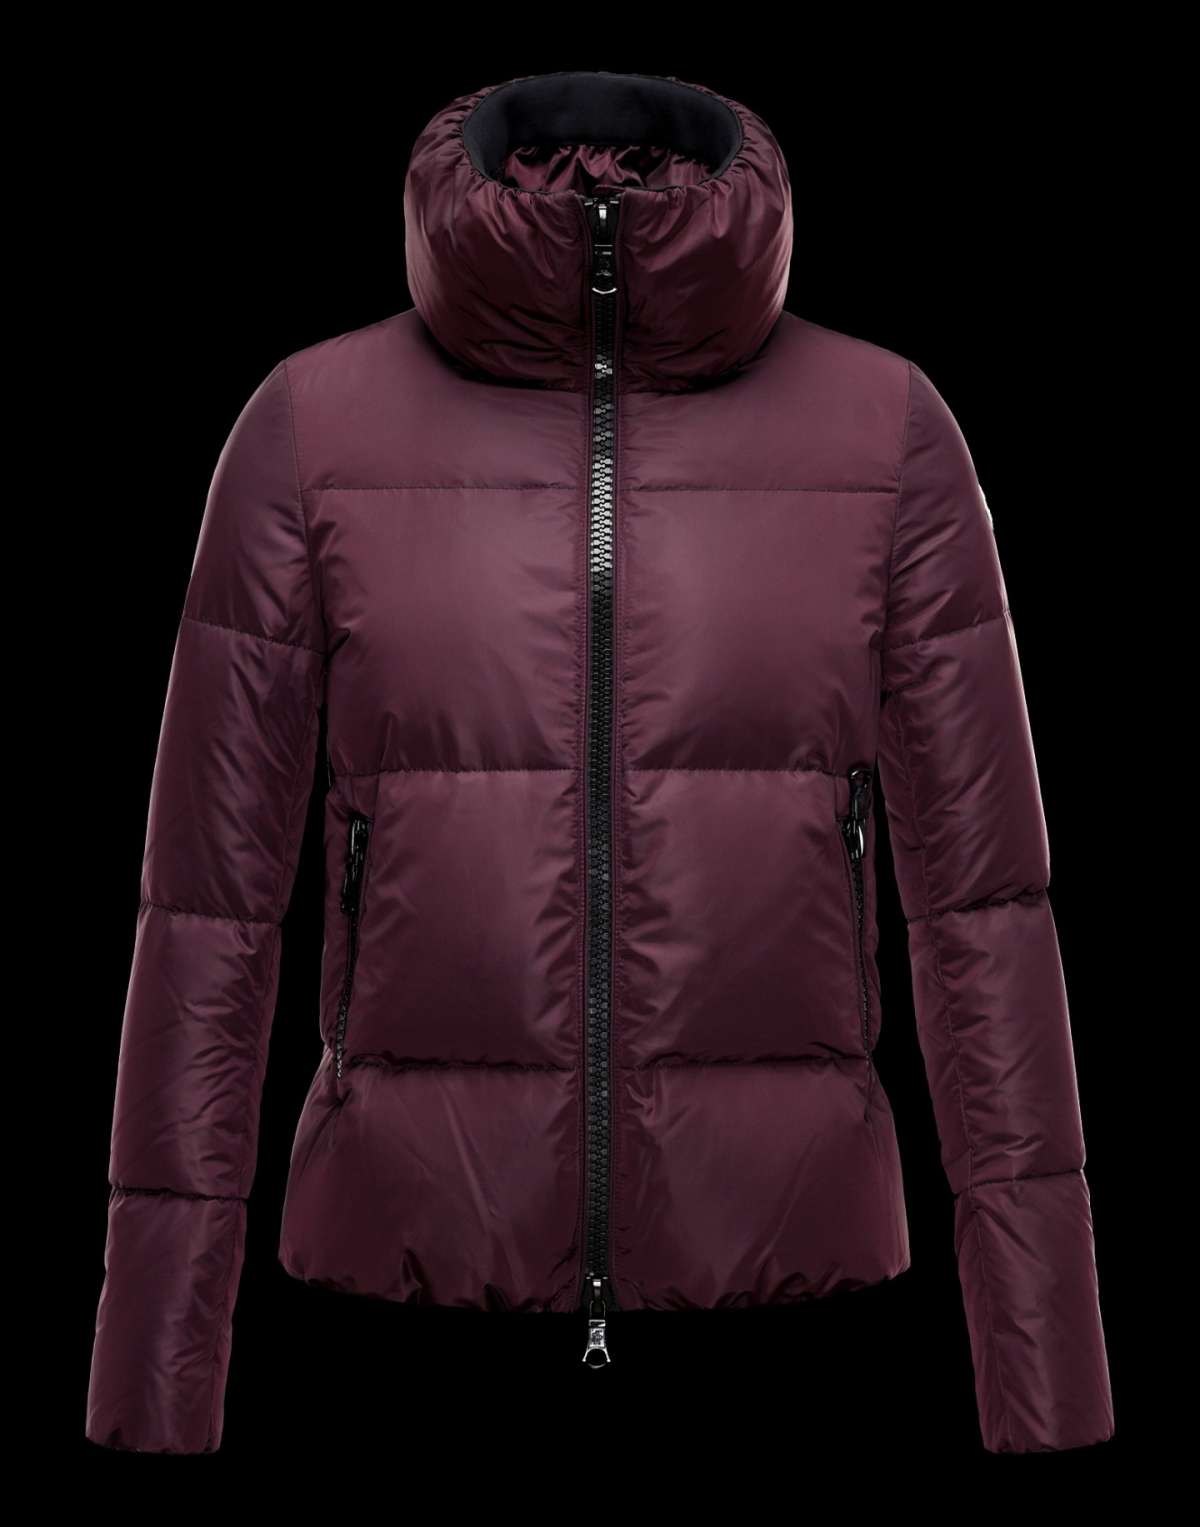 sito ufficiale moncler outlet